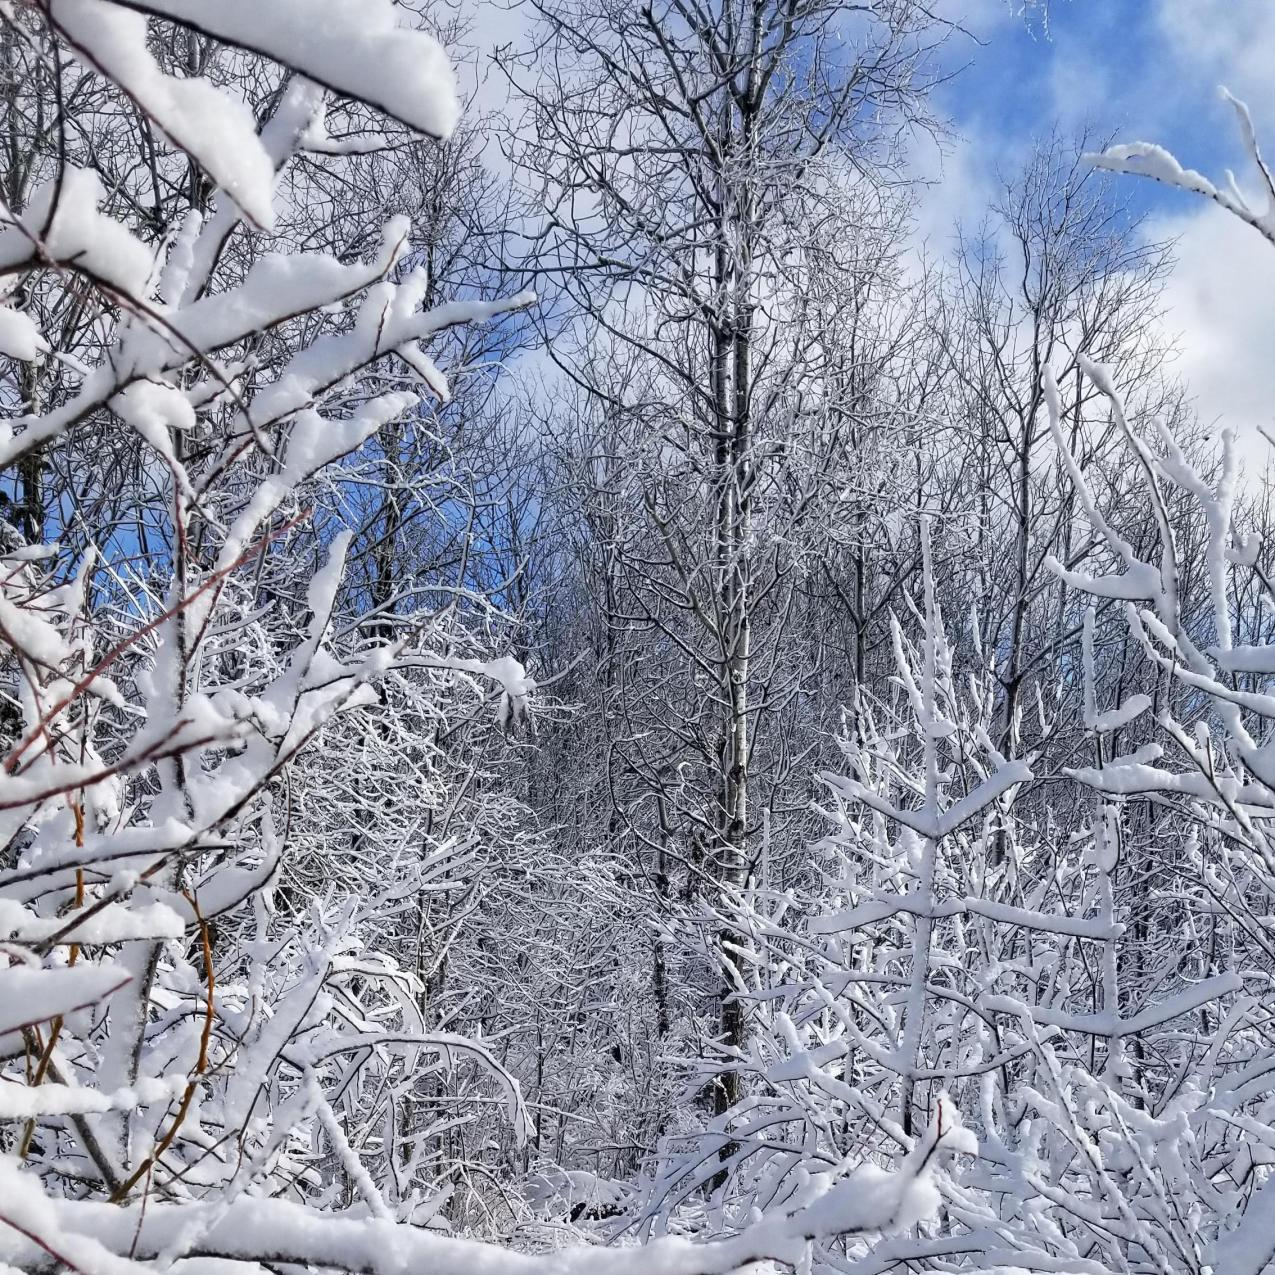 Property trees in winter